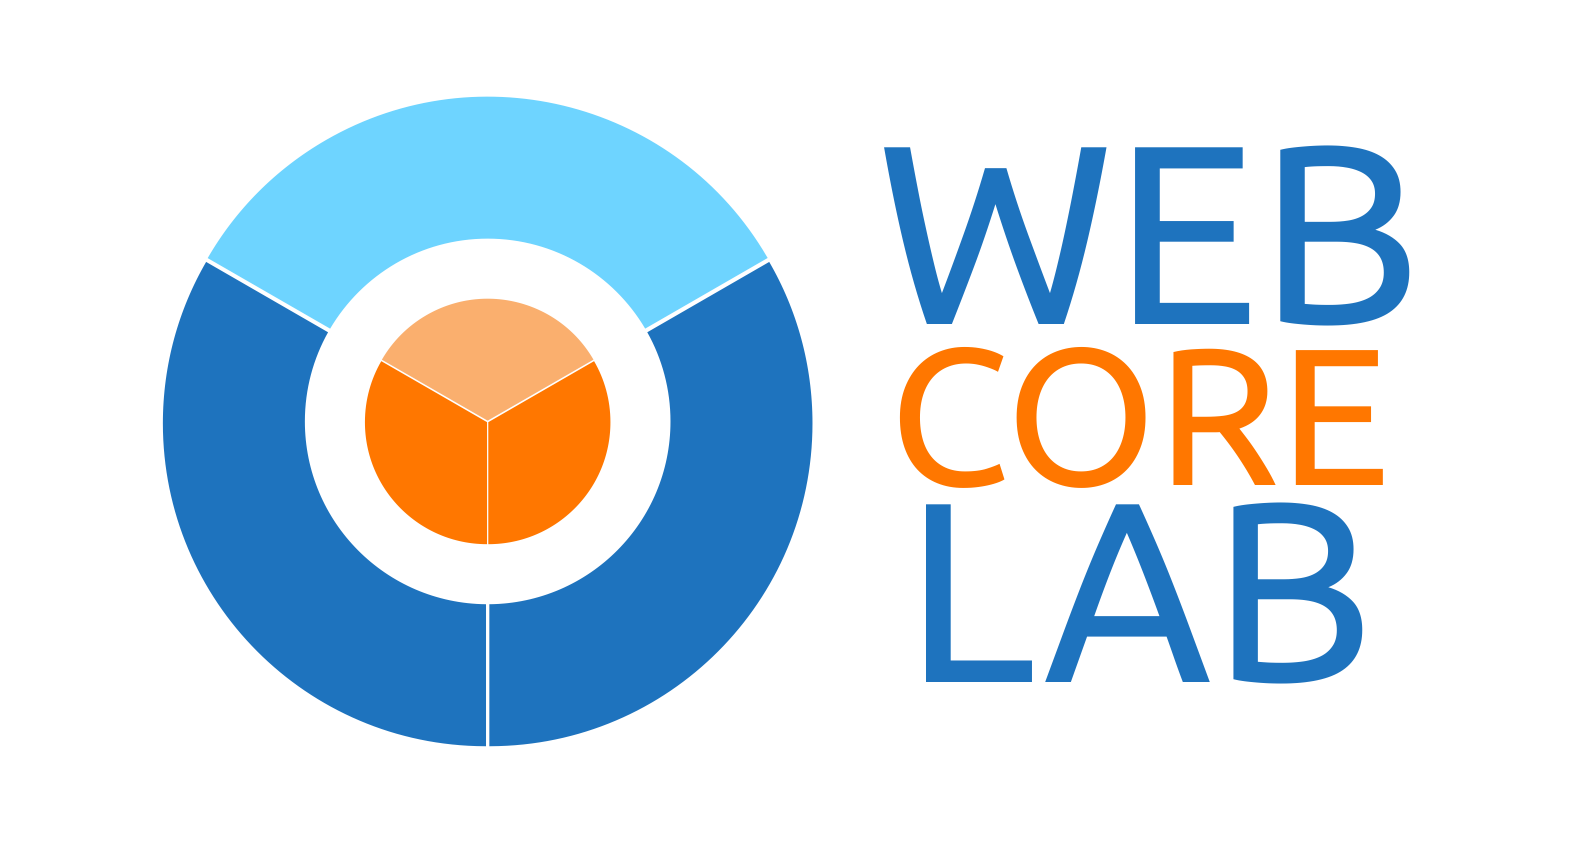 Digital Marketing and Web Design Agency WebCoreLab